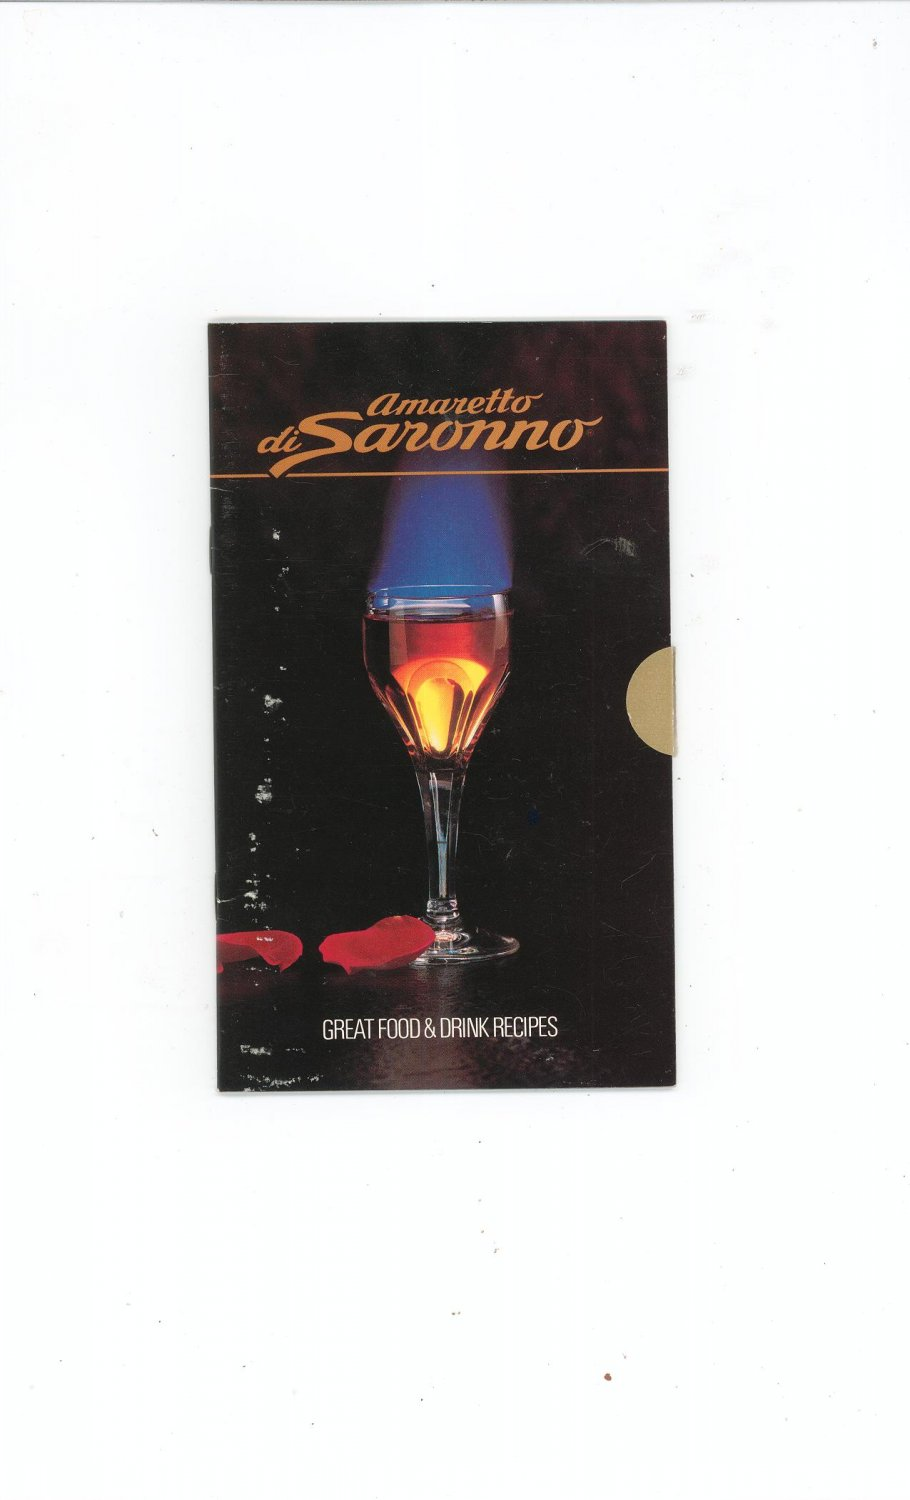 Amarretto DiSoronno Great Food & Drink Recipes 1984